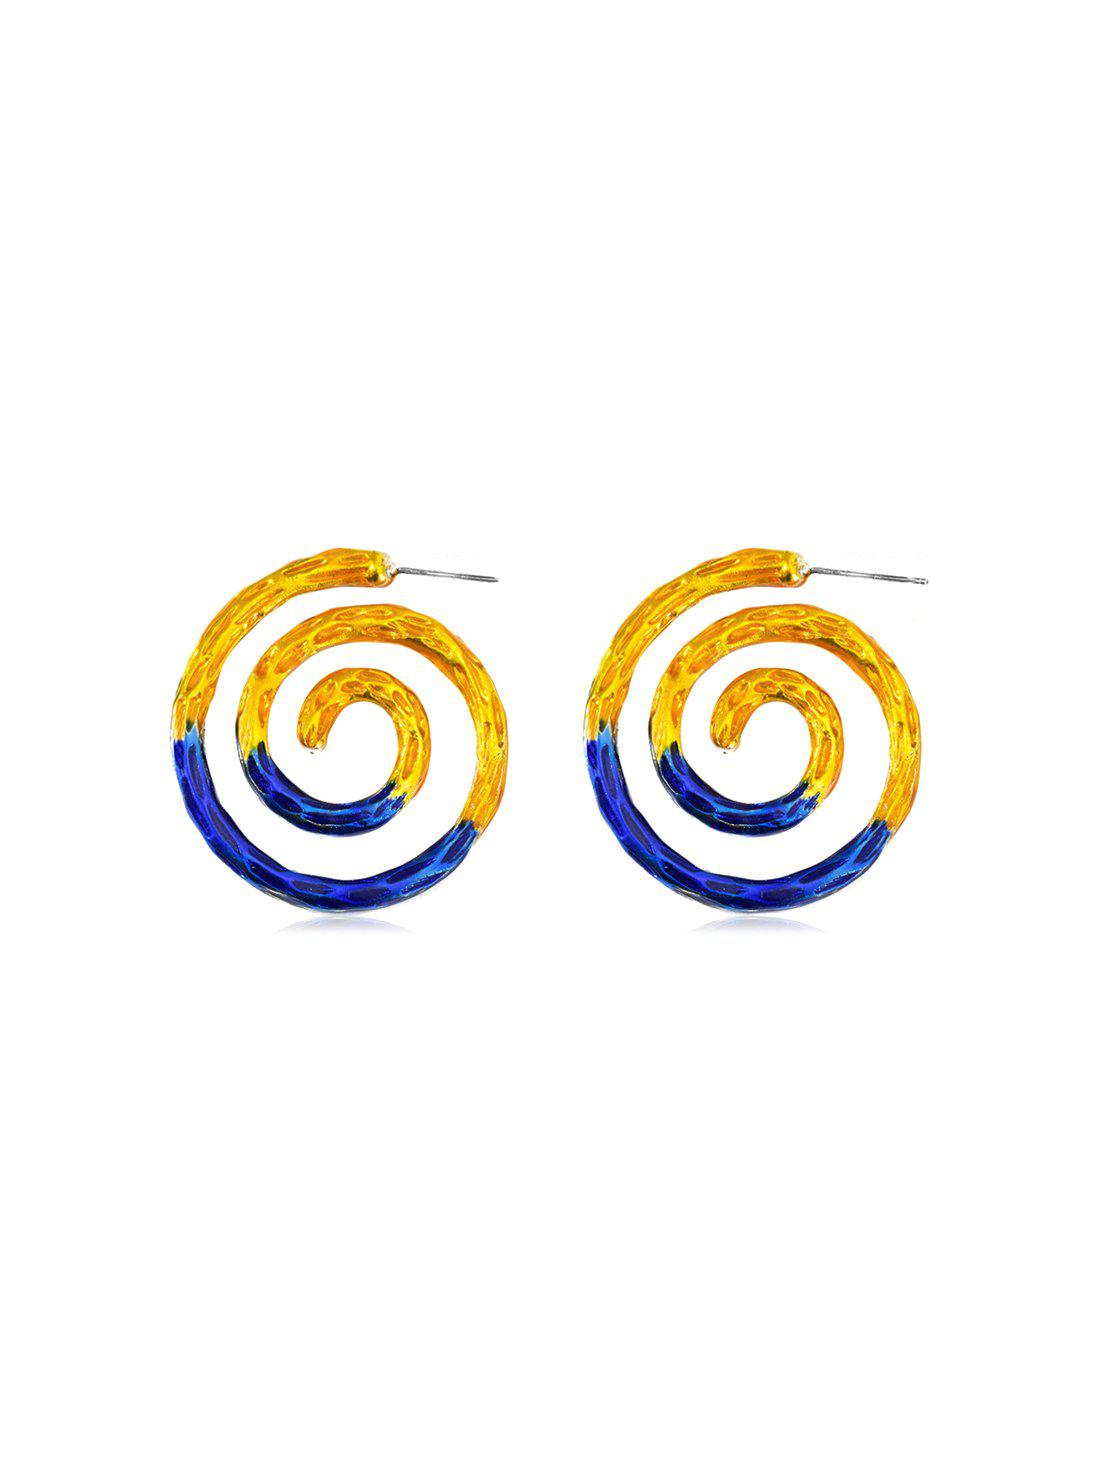 Latest Alloy Two Tone Spiral Earrings